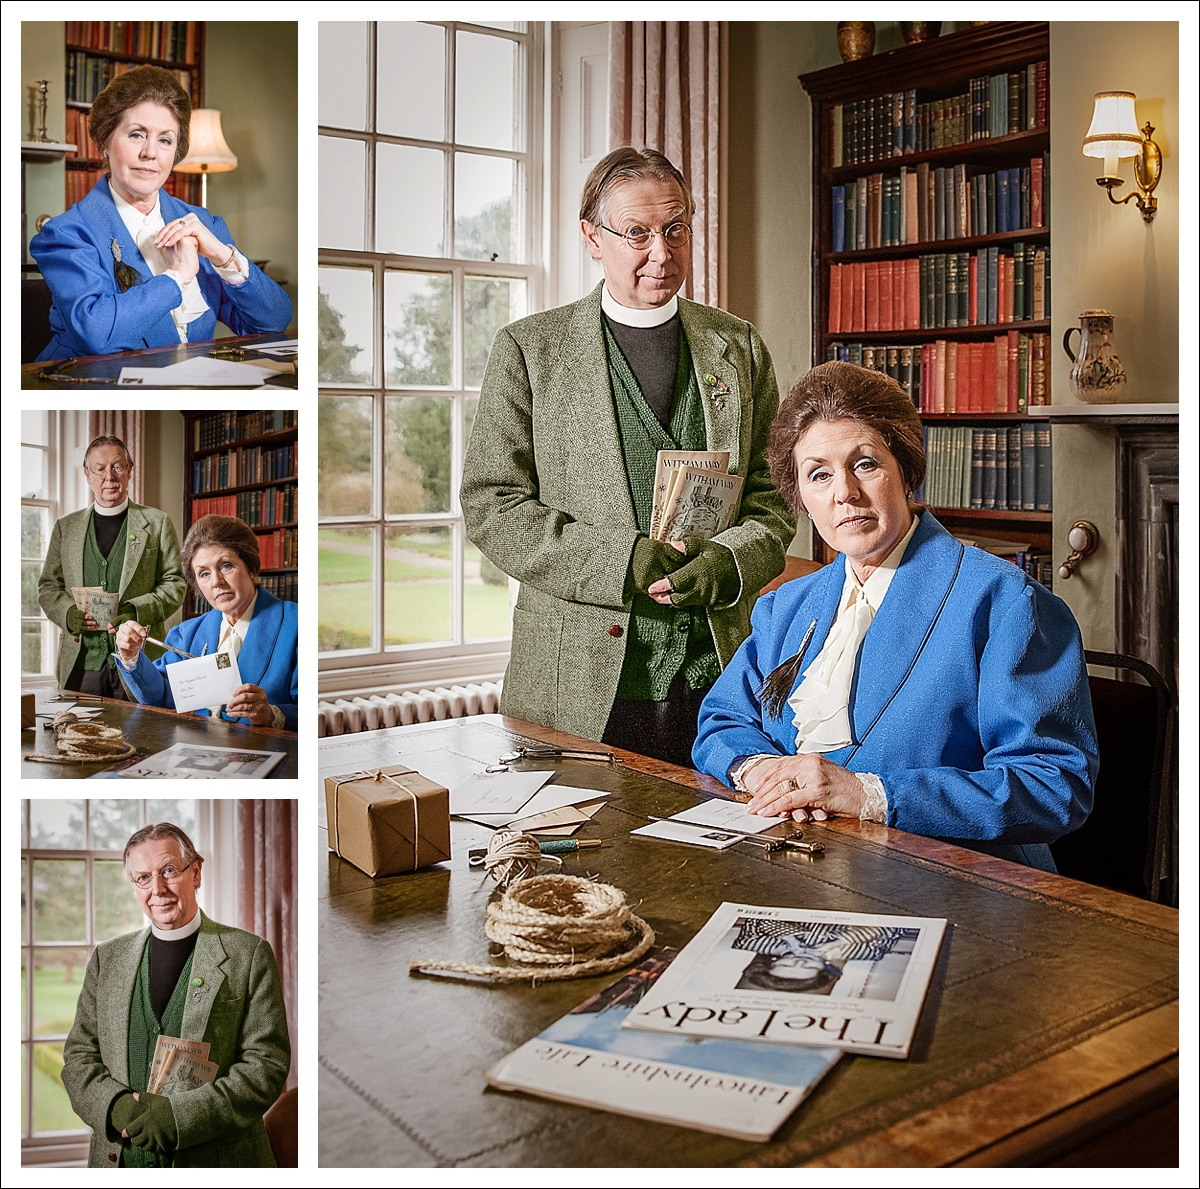 Mrs Peacock (Gail Hinkins) and Rev Green (Chris Hinkins) in the Study (Gunby Hall)